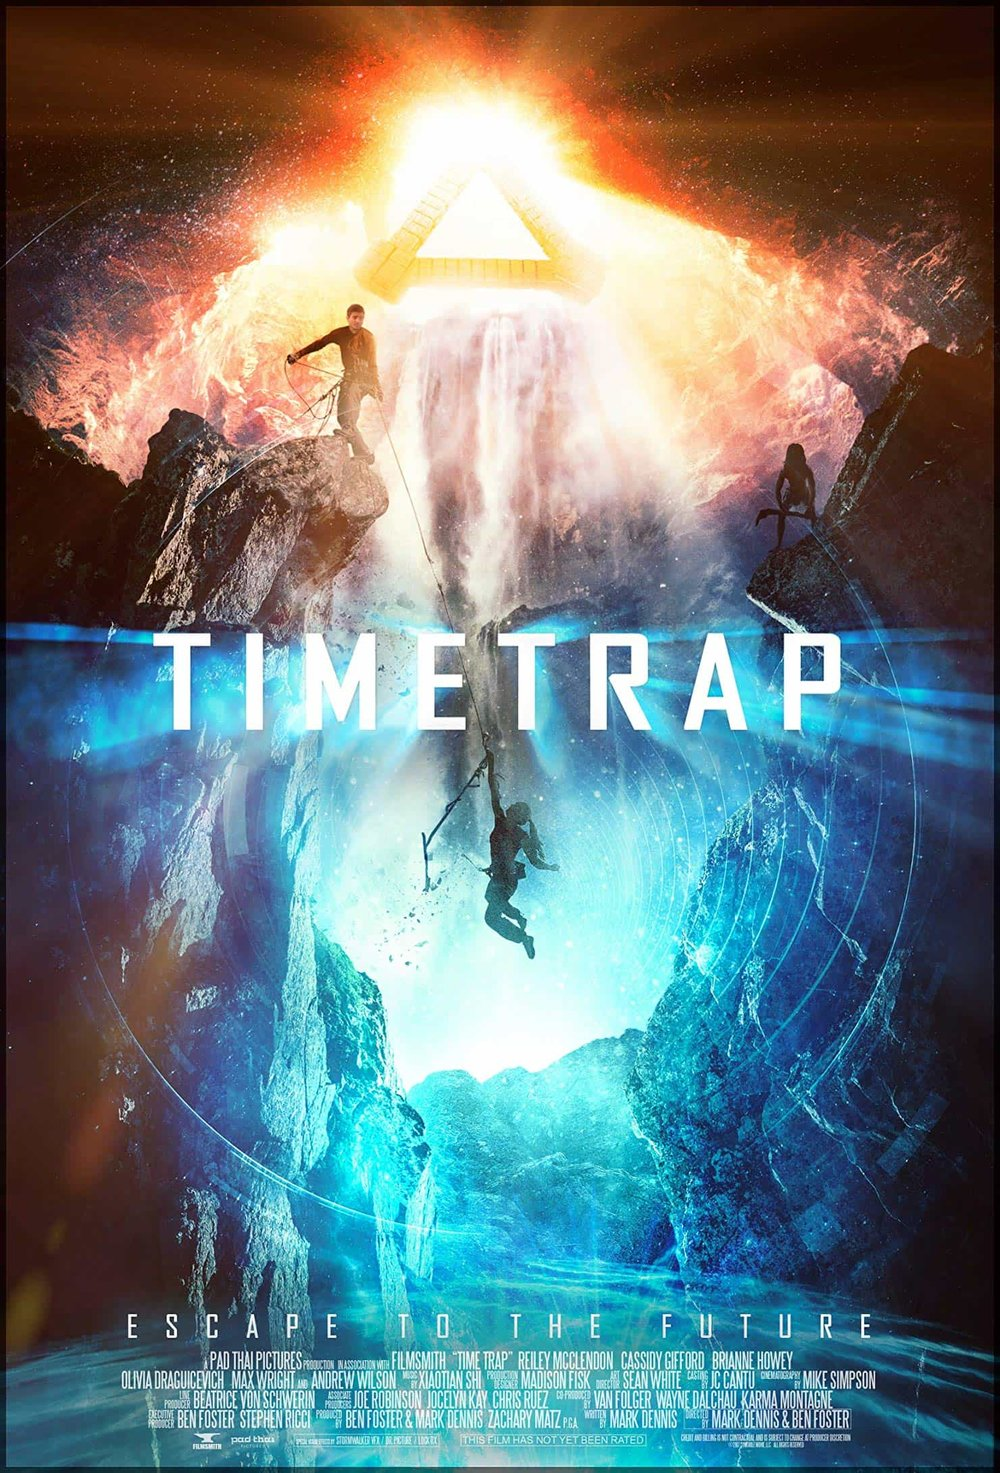 time-trap-is-a-great-mind-bending-sci-fi-film-worth-checking-out-and-heres-a-trailer